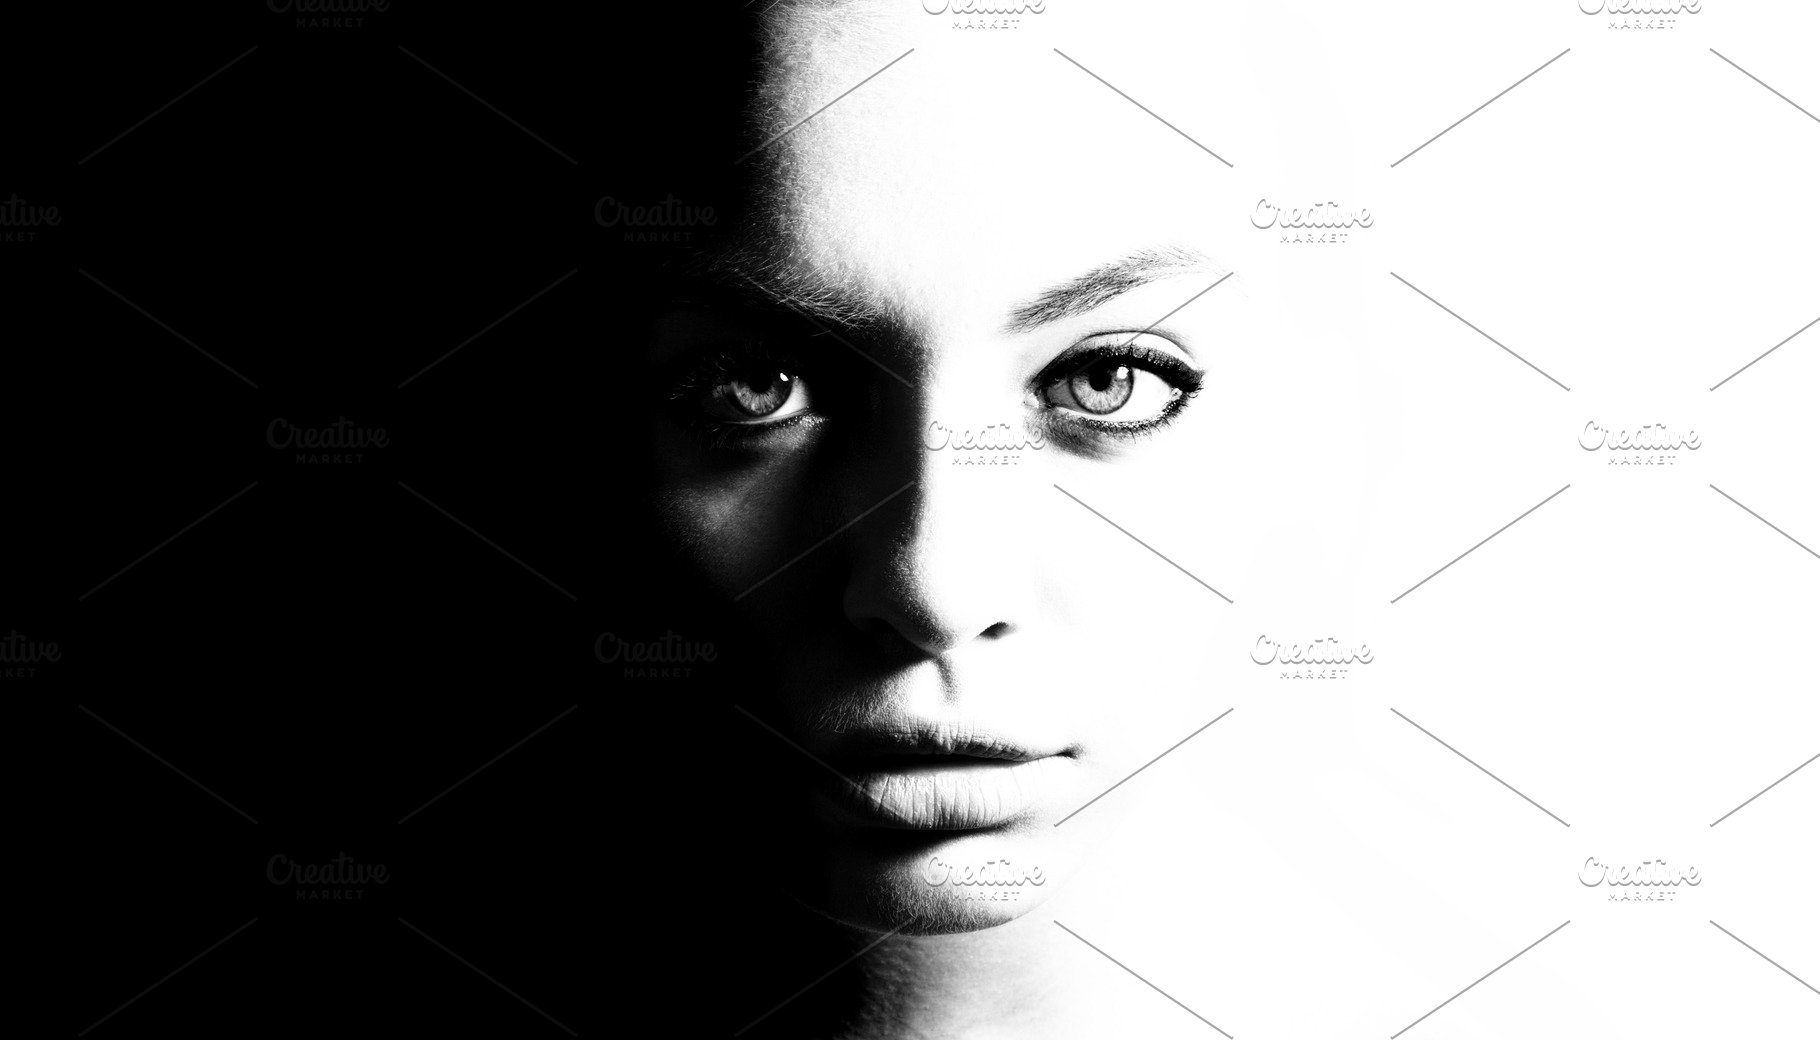 Save high contrast black and white portrait